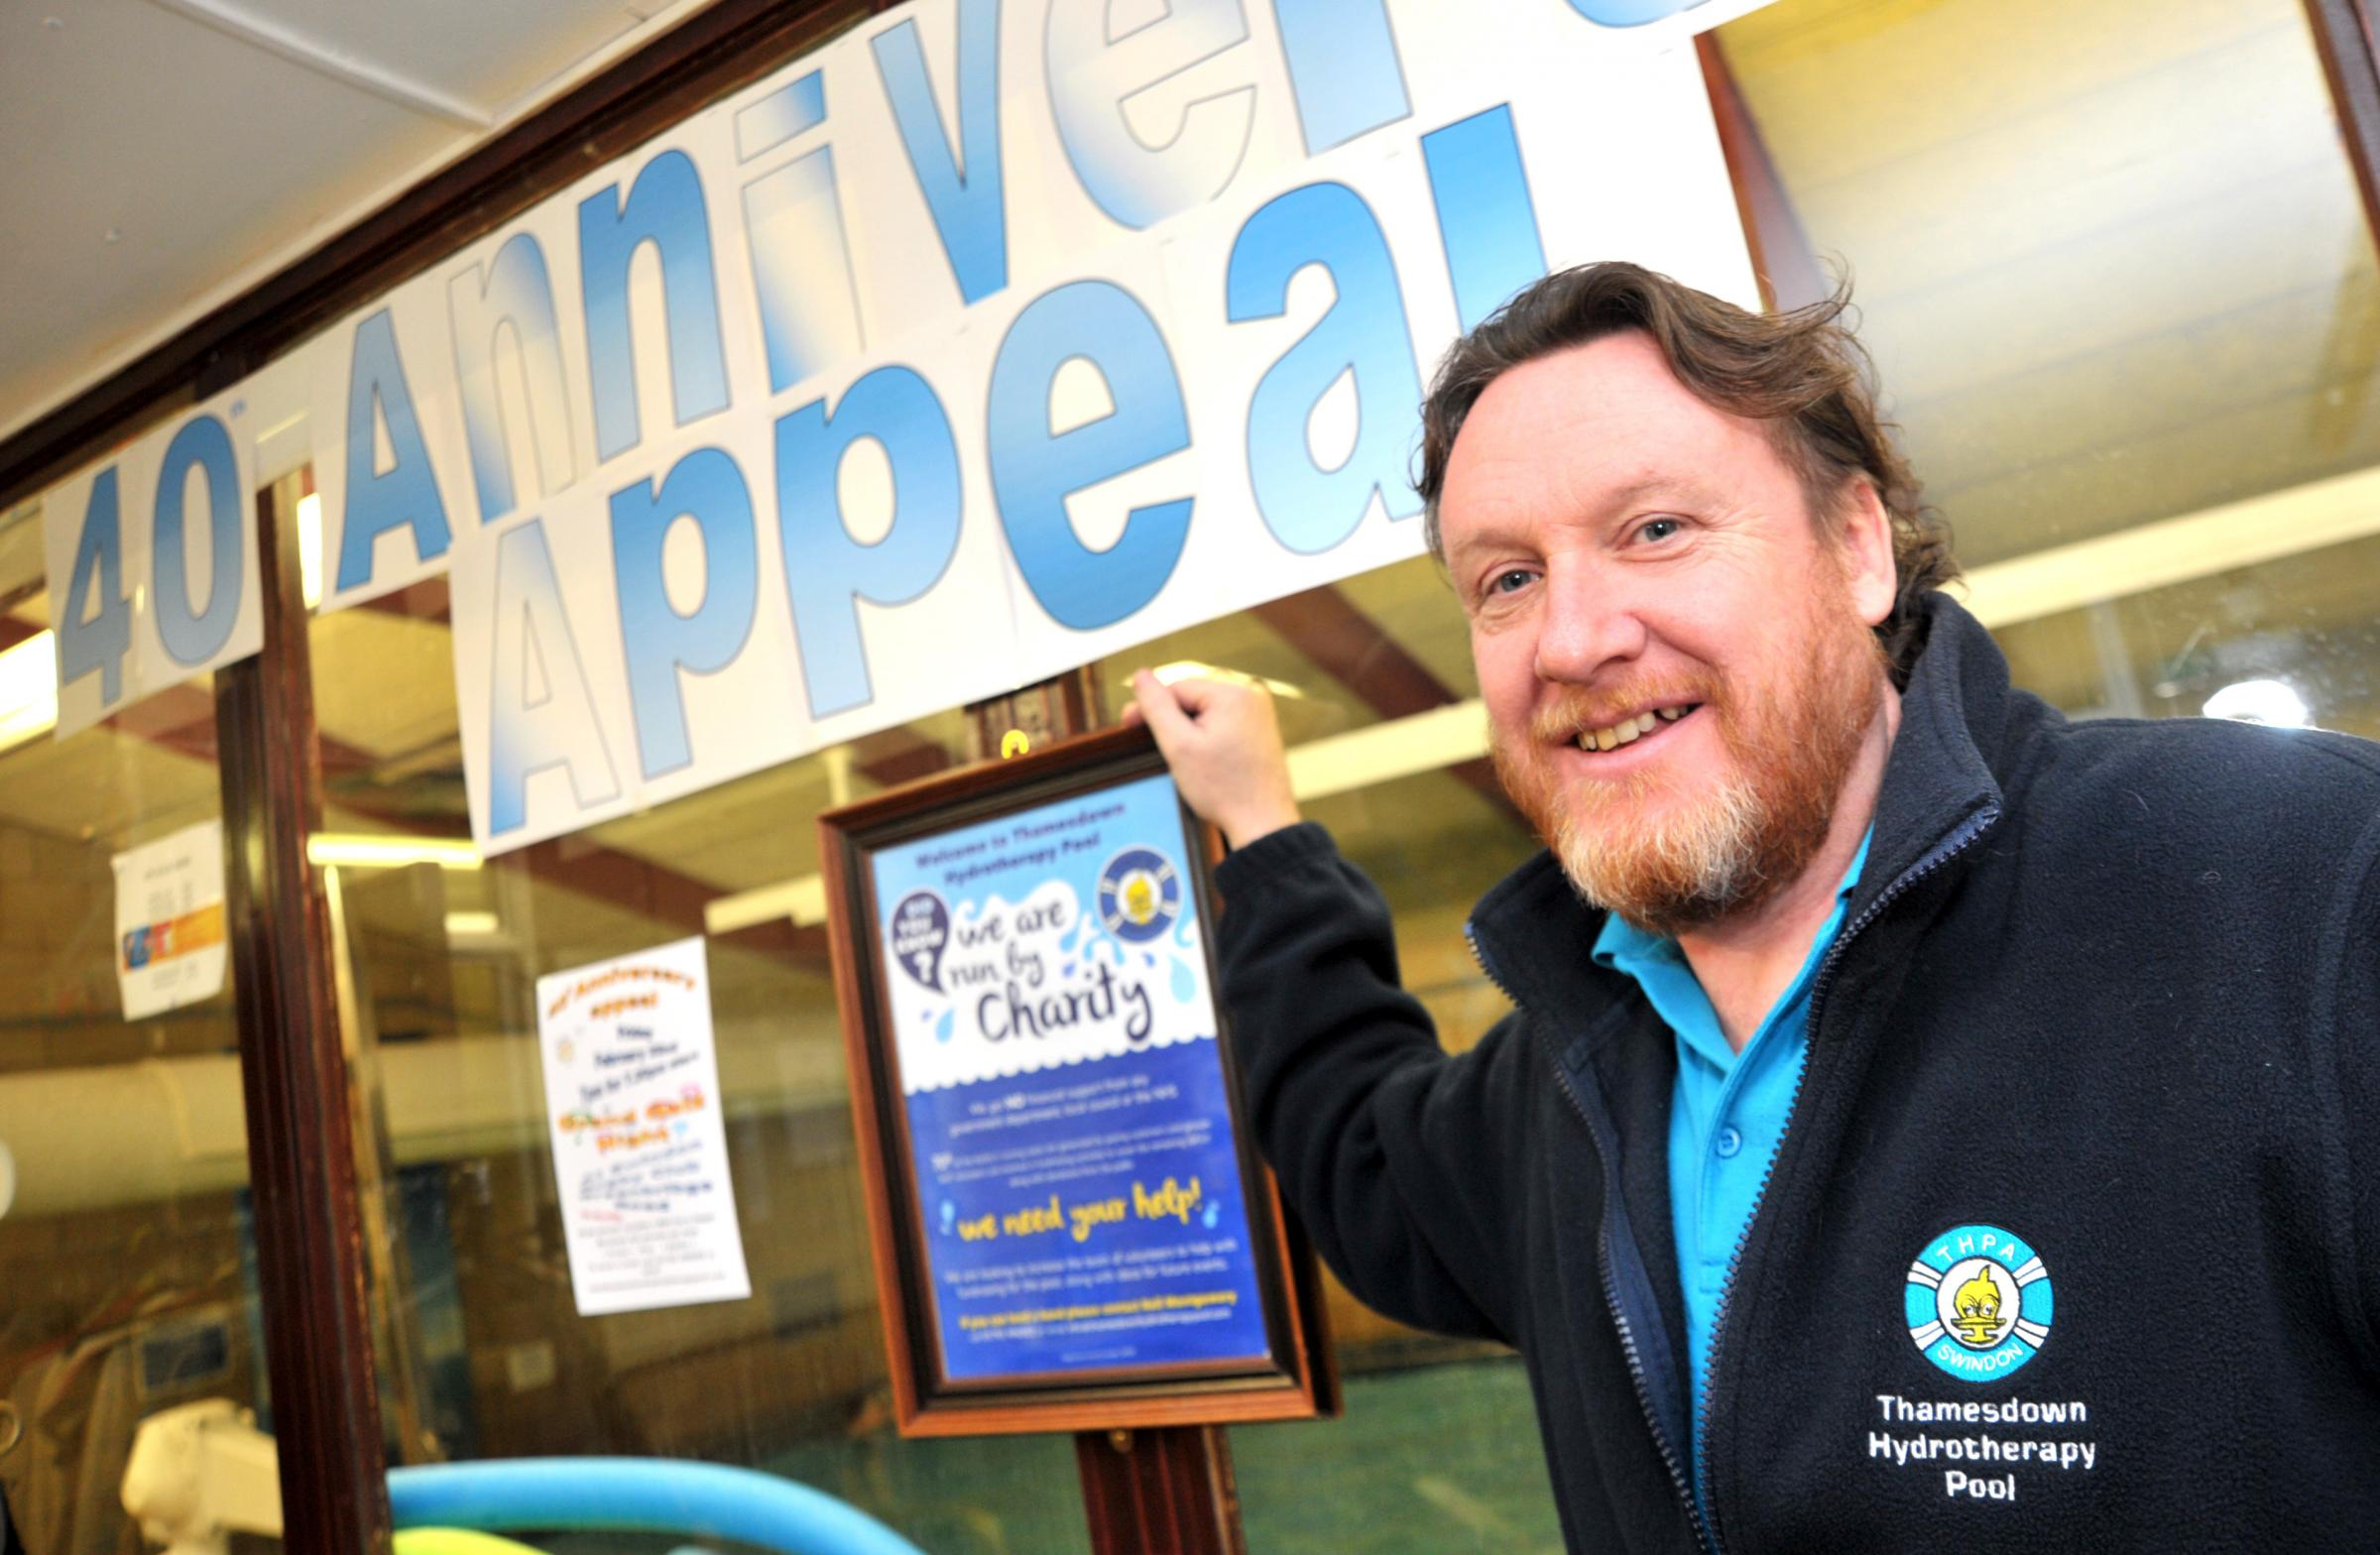 Neil Montgomery aims not just to raise money but also to raise Thamesdown Hydrotherapy Pool's profile during its 40th anniversary year